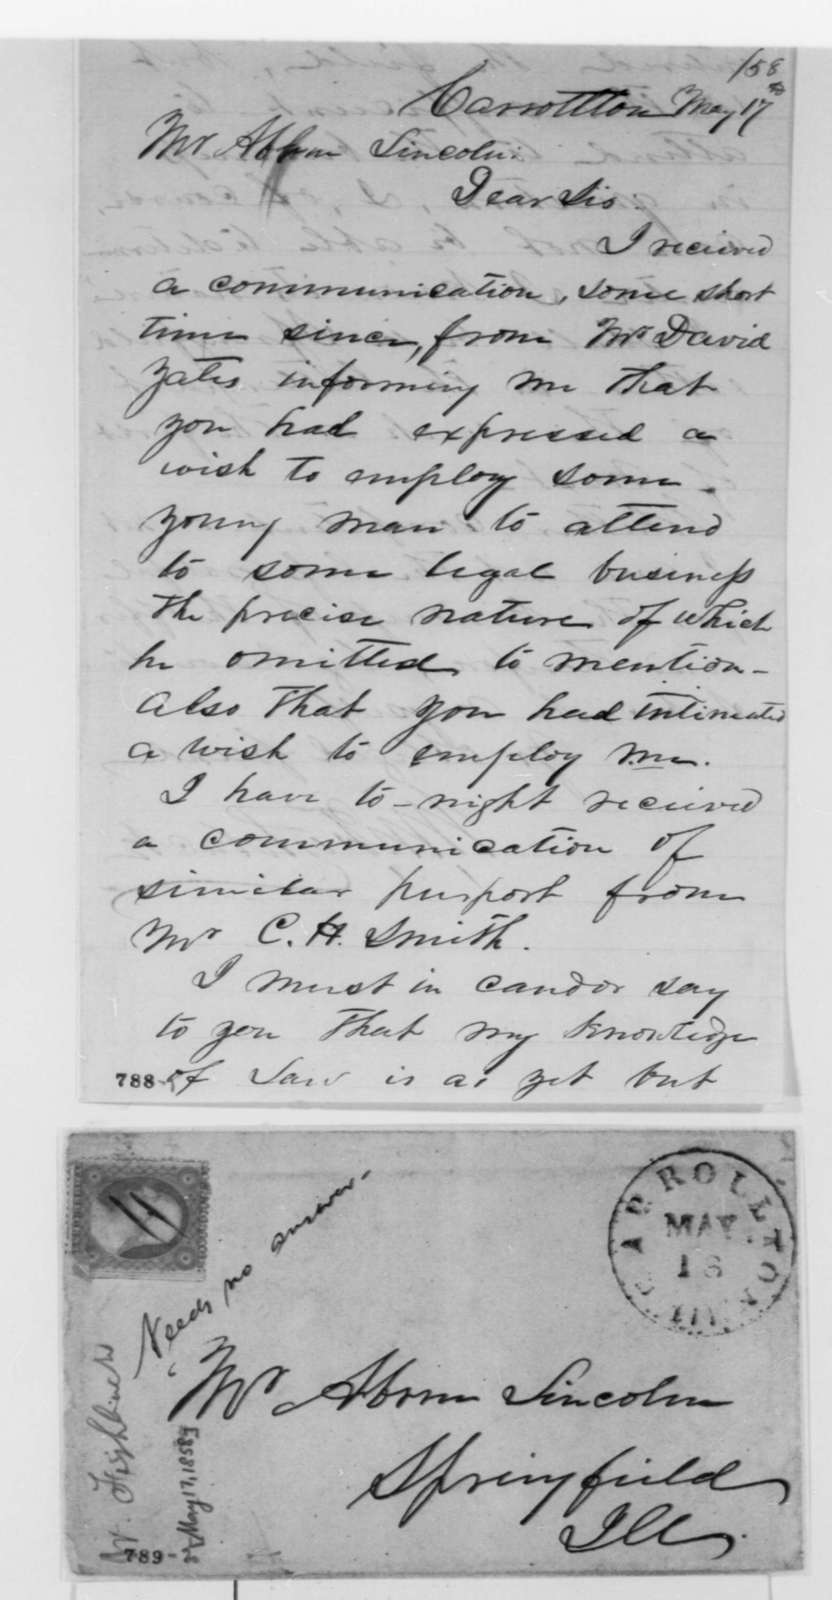 William M. Fishback to Abraham Lincoln, Monday, May 17, 1858  (Application)